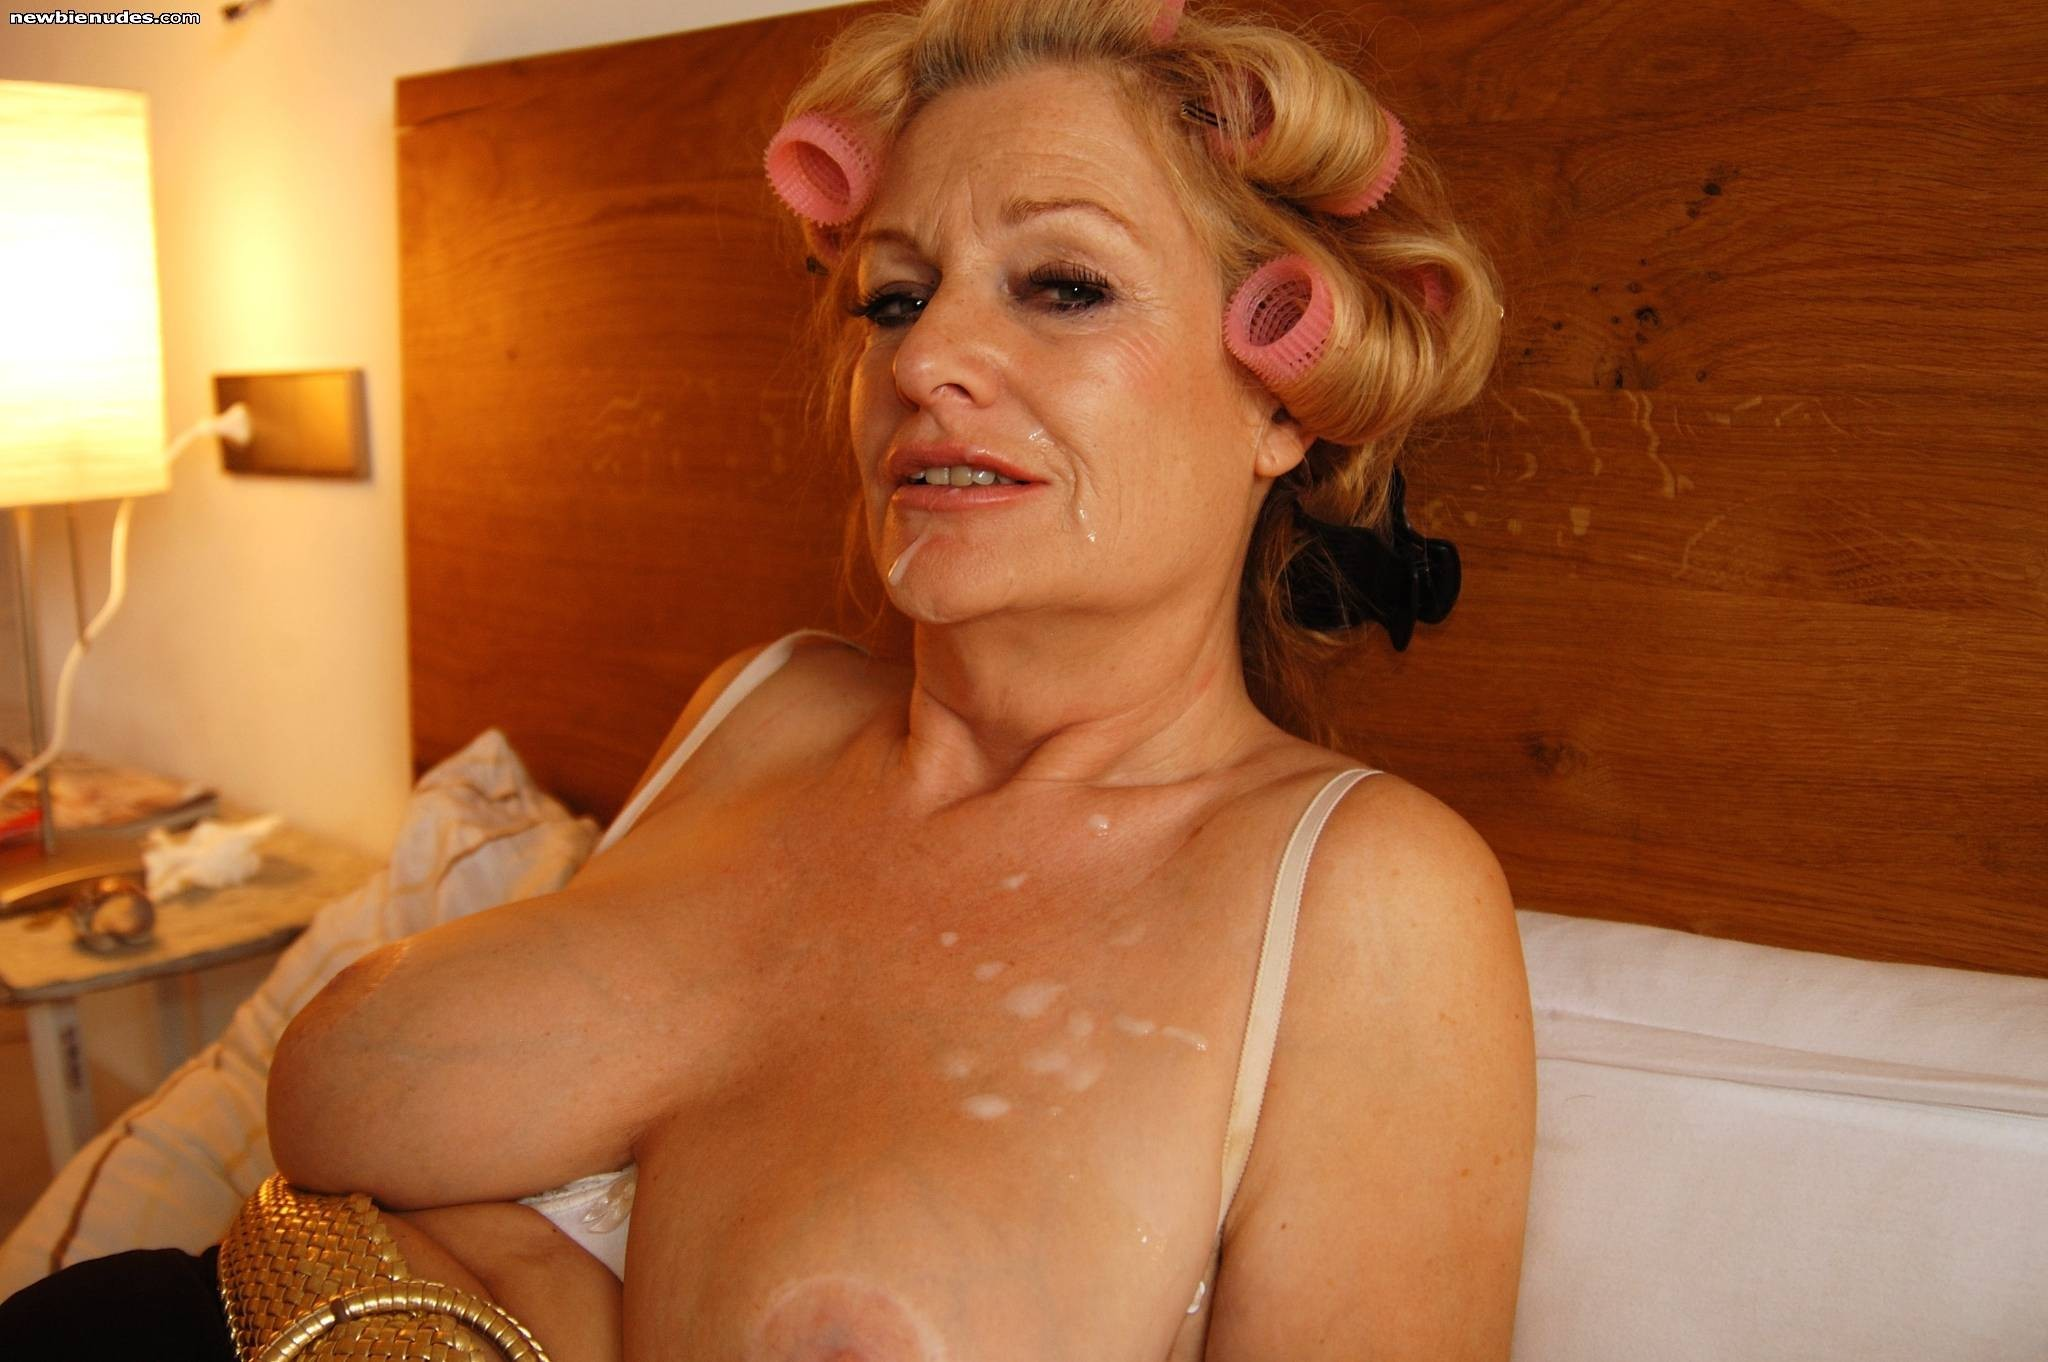 Sex video old ladies Hot